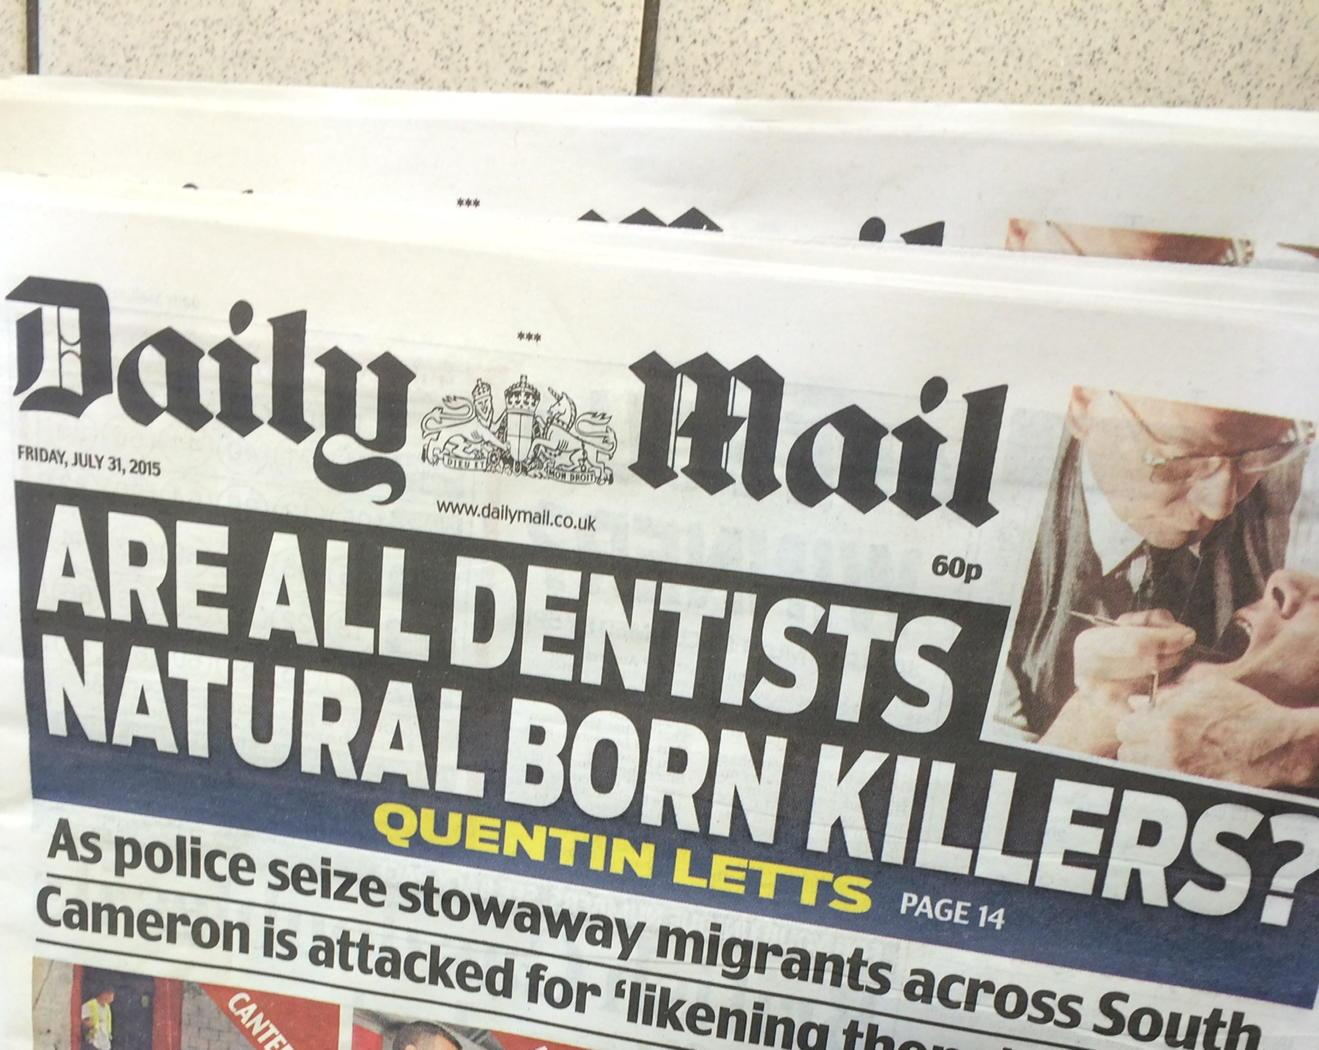 Really Daily Mail?!? Even by your standards... http://t.co/Un1DS42EnG